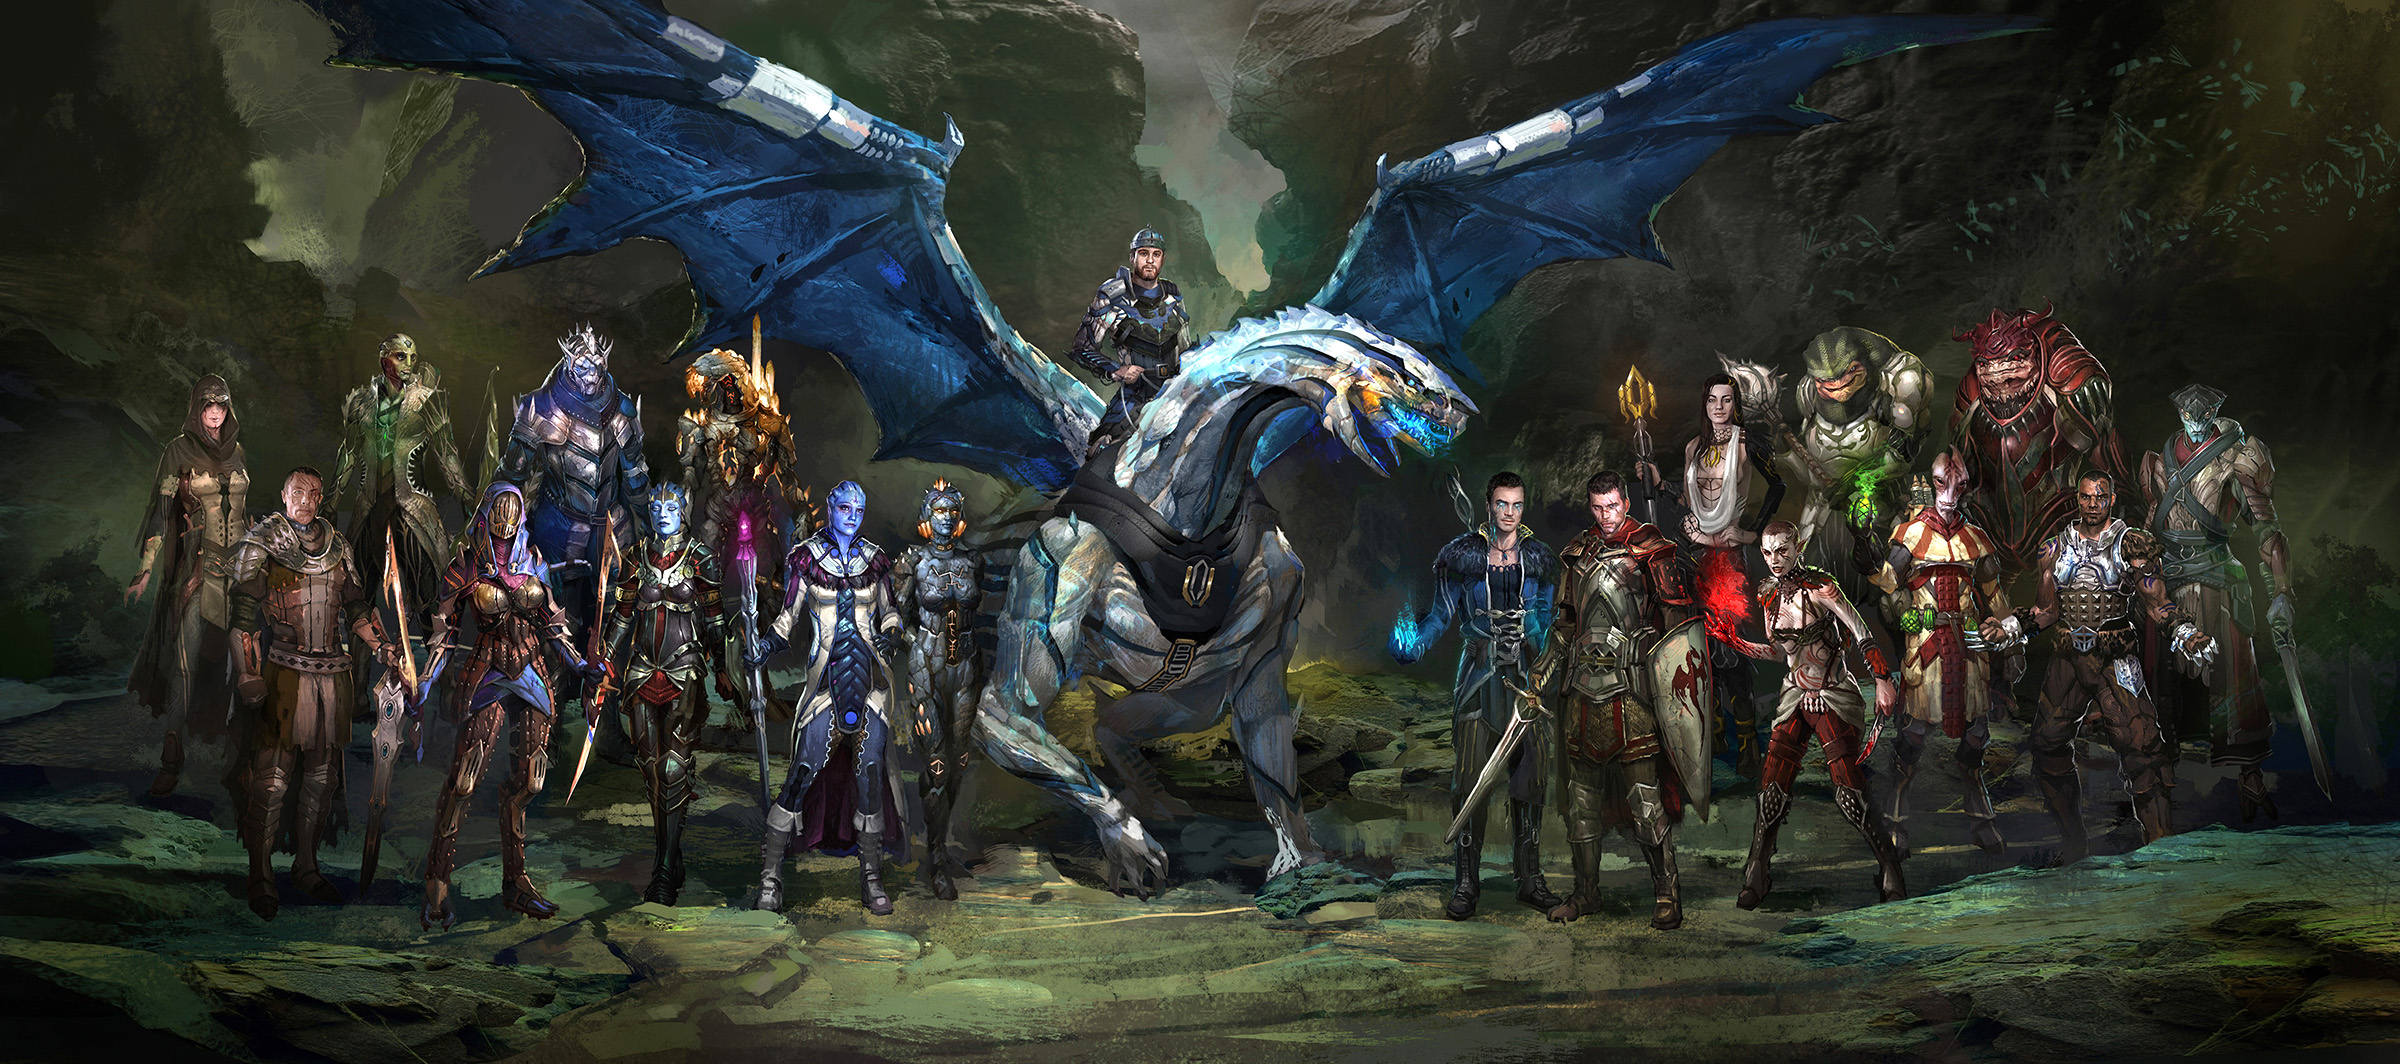 Dragon Age Bioware Video Games Rpg Fantasy Art: Fan Blog: Andrew Ryan, Artist